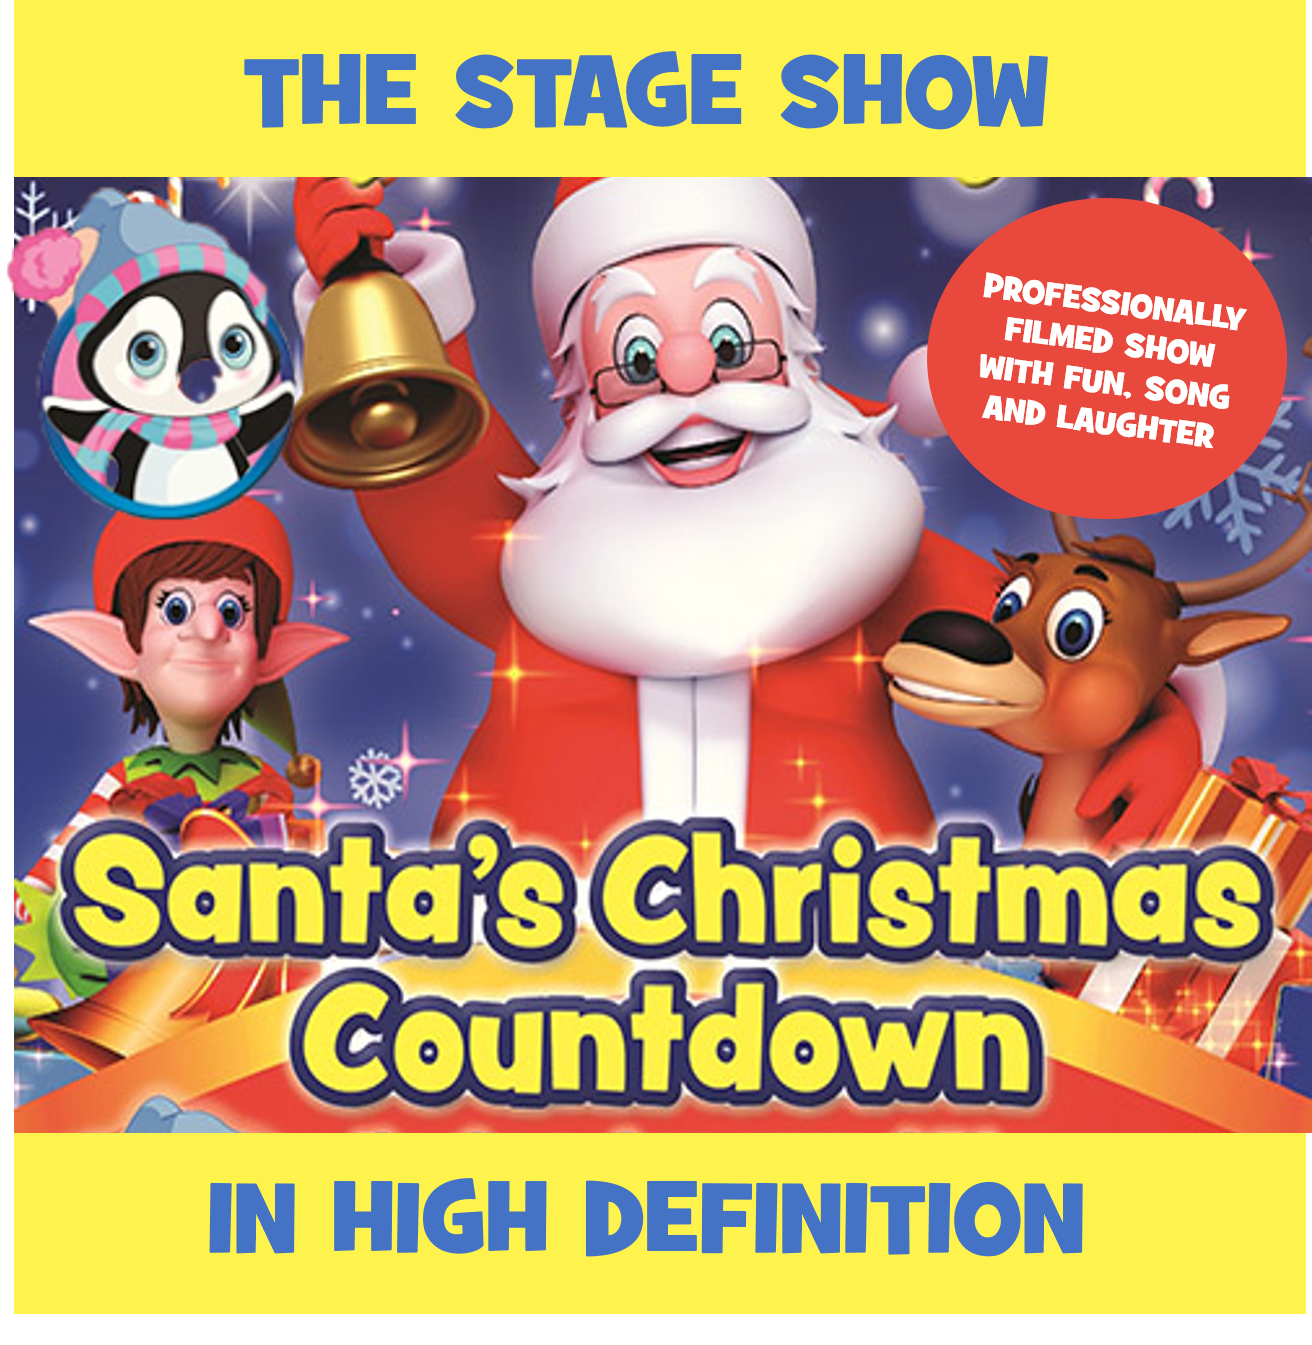 Santa's Christmas Countdown: The Stage Show (HD)